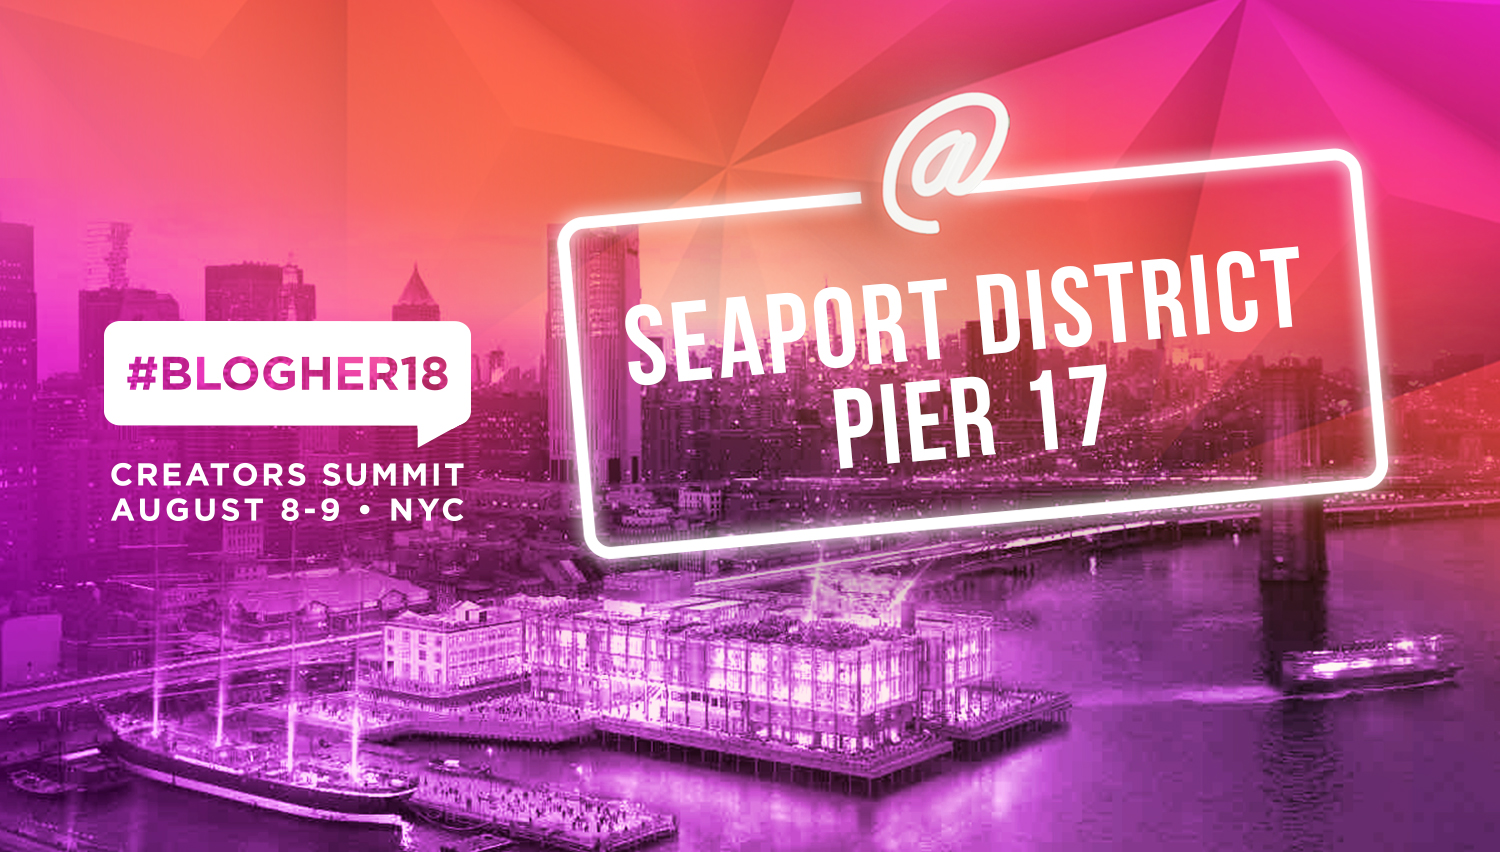 you will love pier 17 - Learn more about the home to #BlogHer18 Creators Summit and celebrate the Seaport with $75 off your ticket!Use code SEAPORT until Sunday to save.